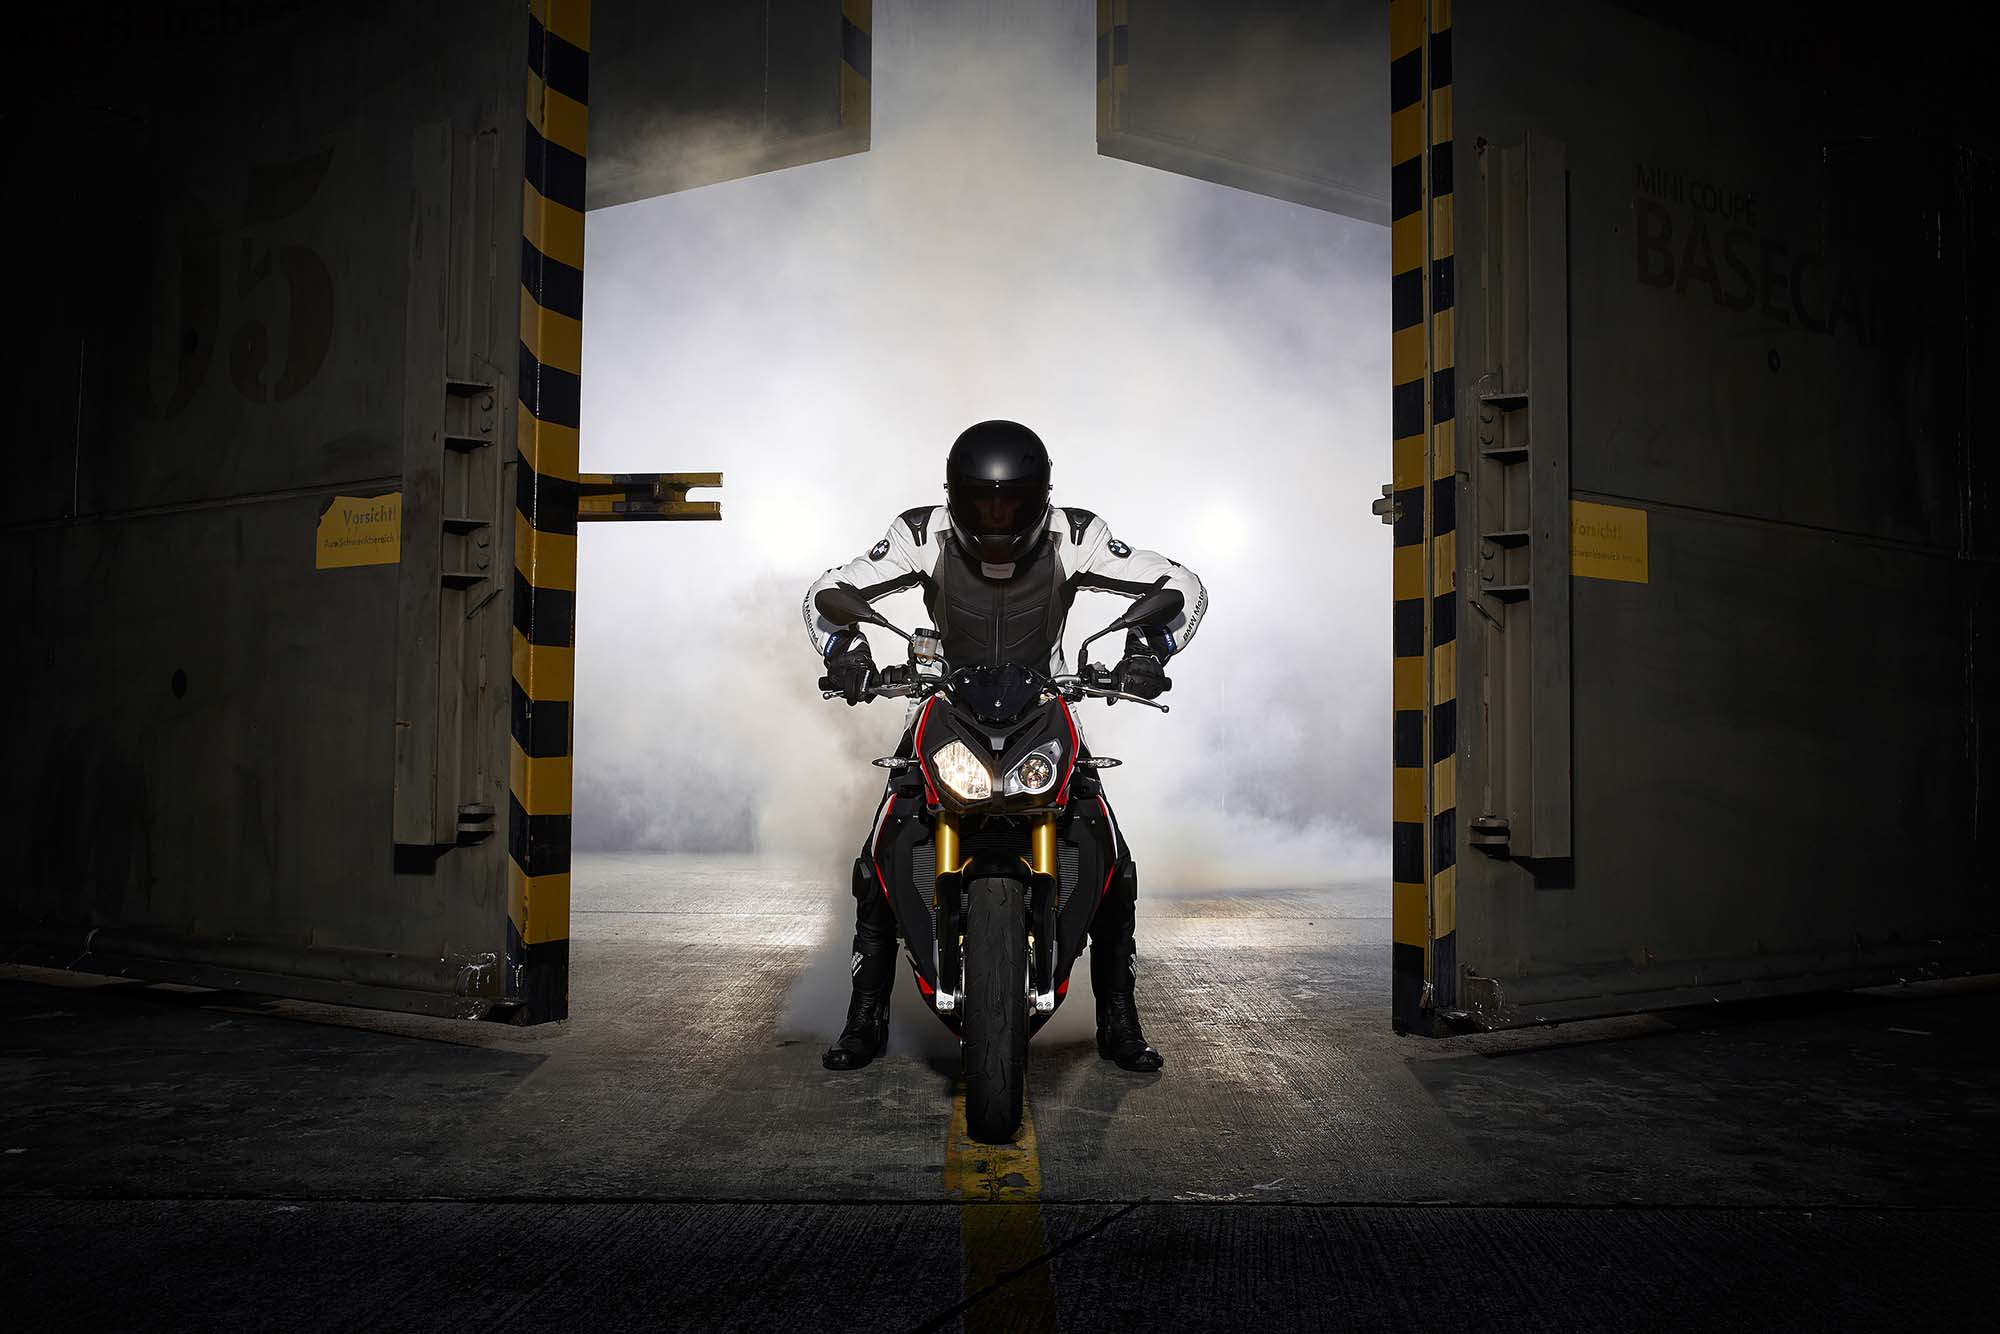 http://www.asphaltandrubber.com/wp-content/gallery/2014-bmw-s1000r/2014-bmw-s1000r-action-84.jpg